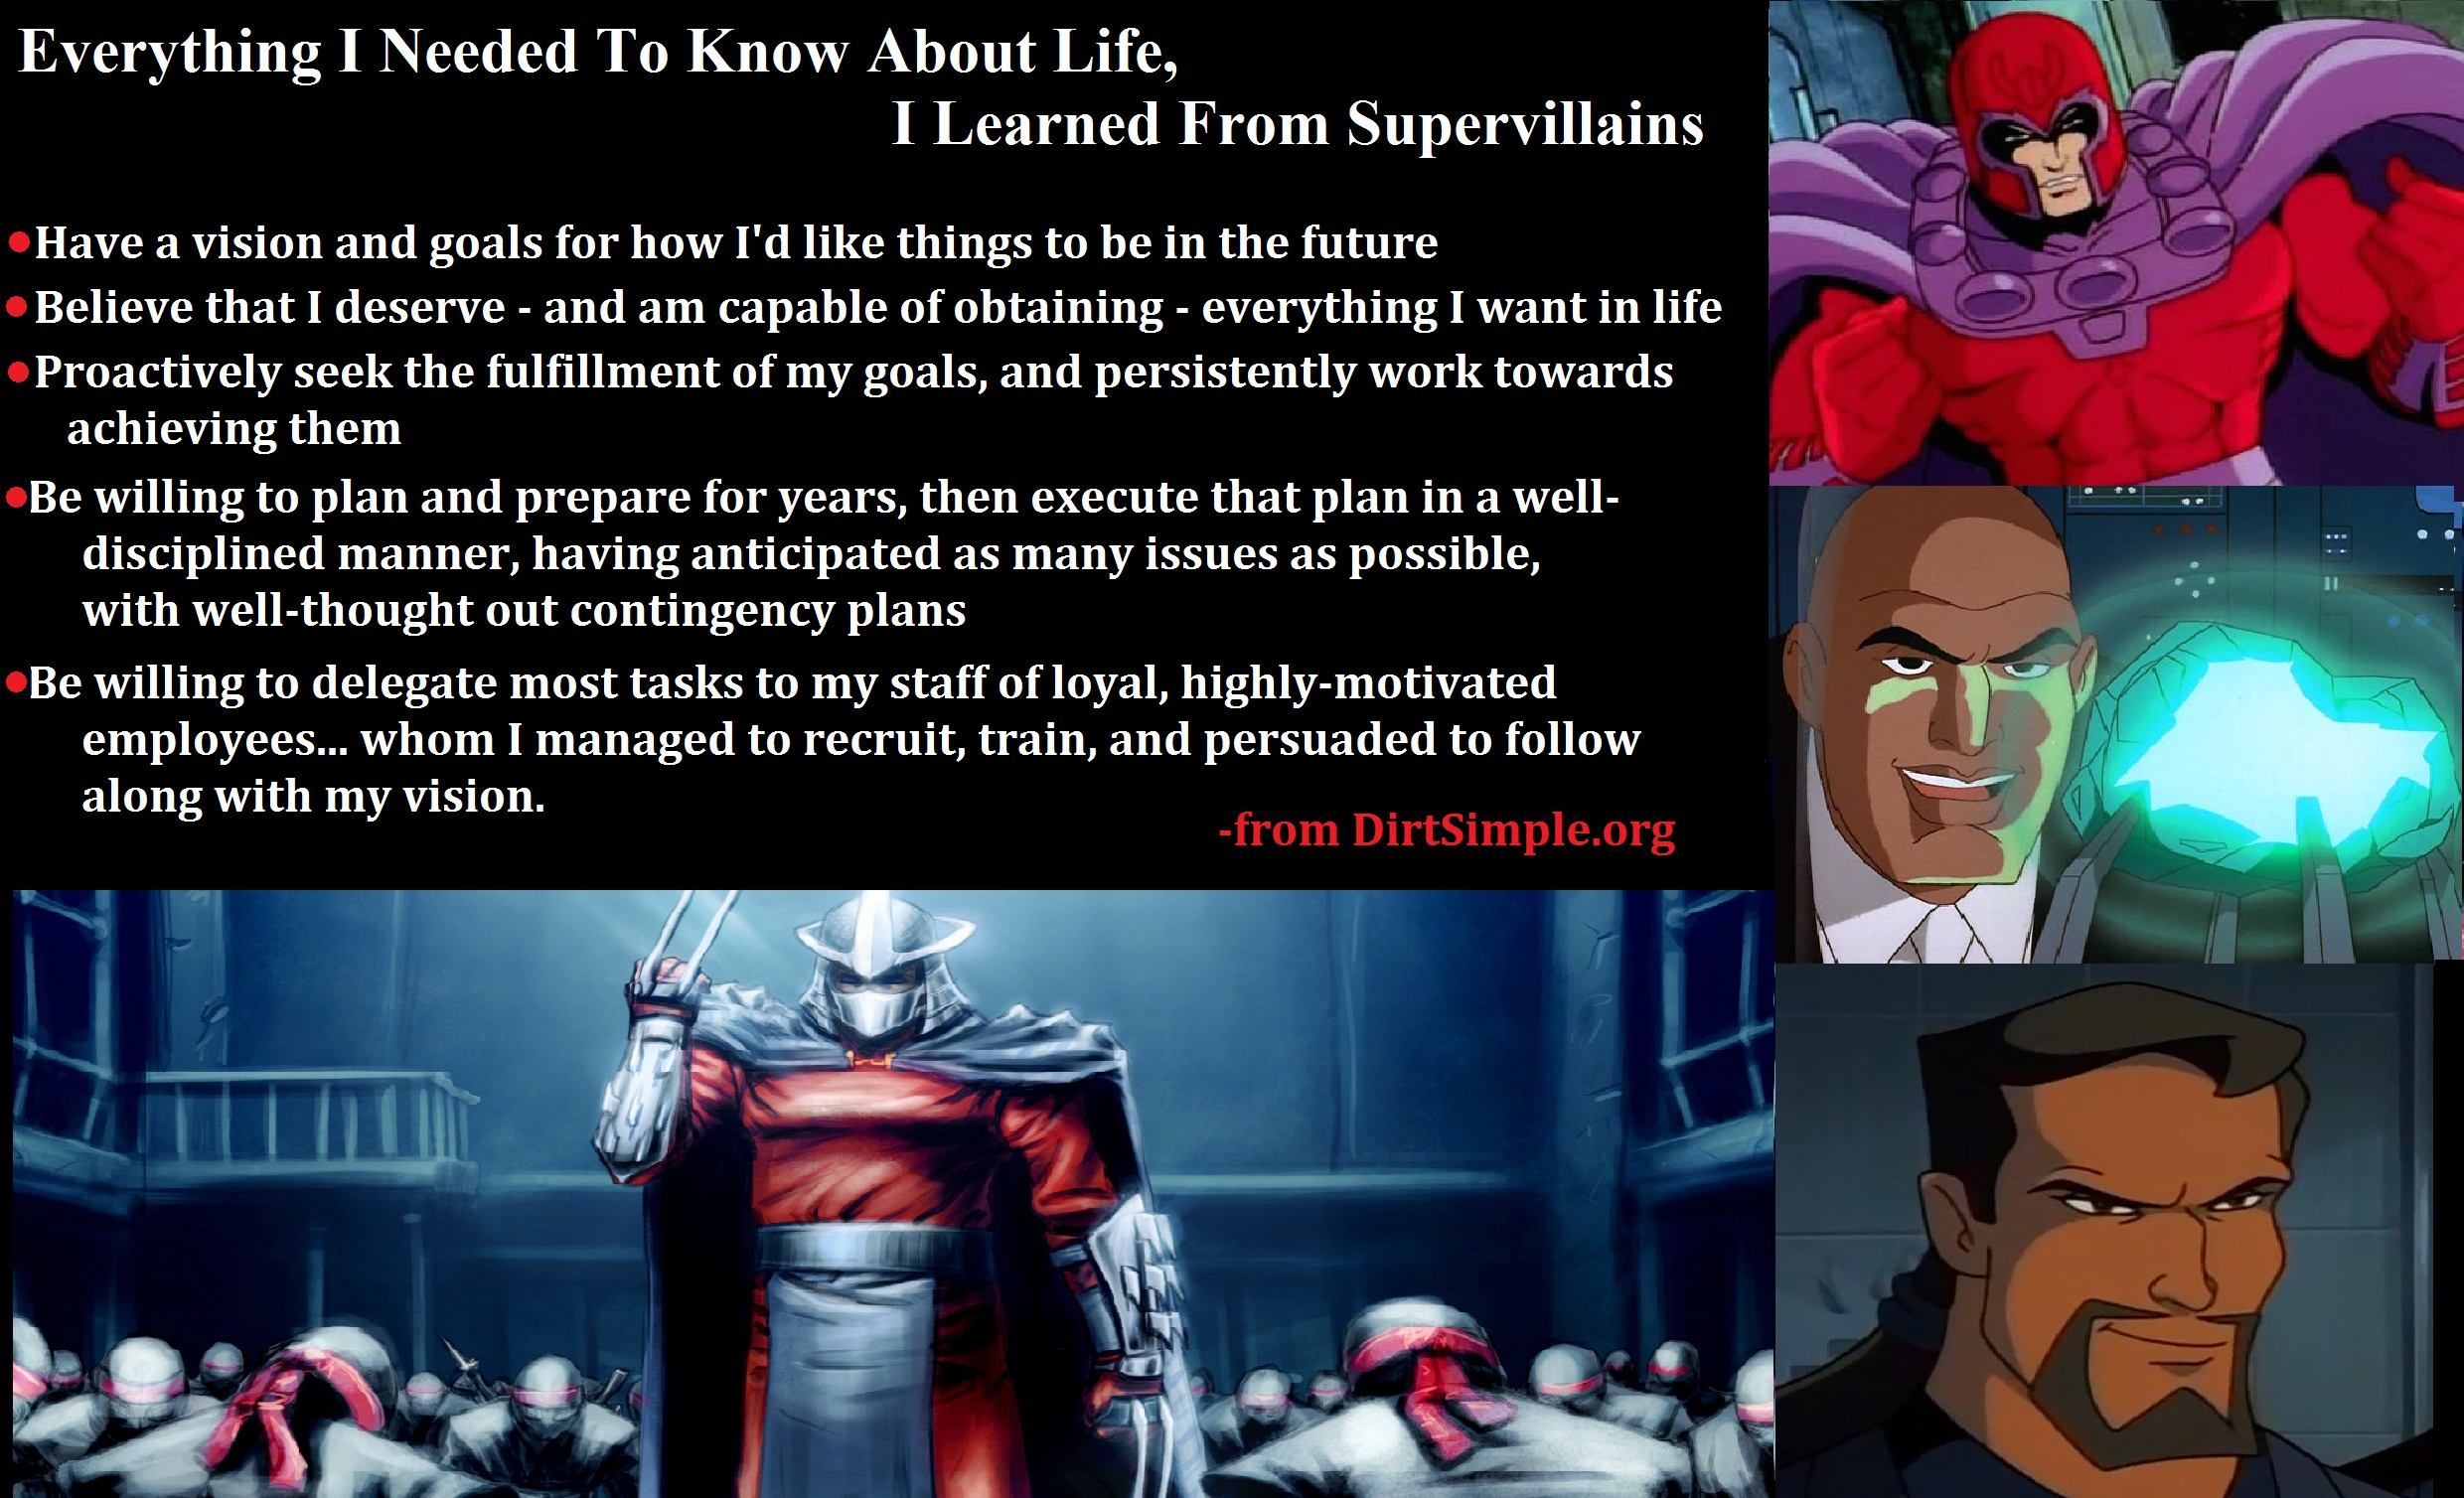 Learned From SuperVillians